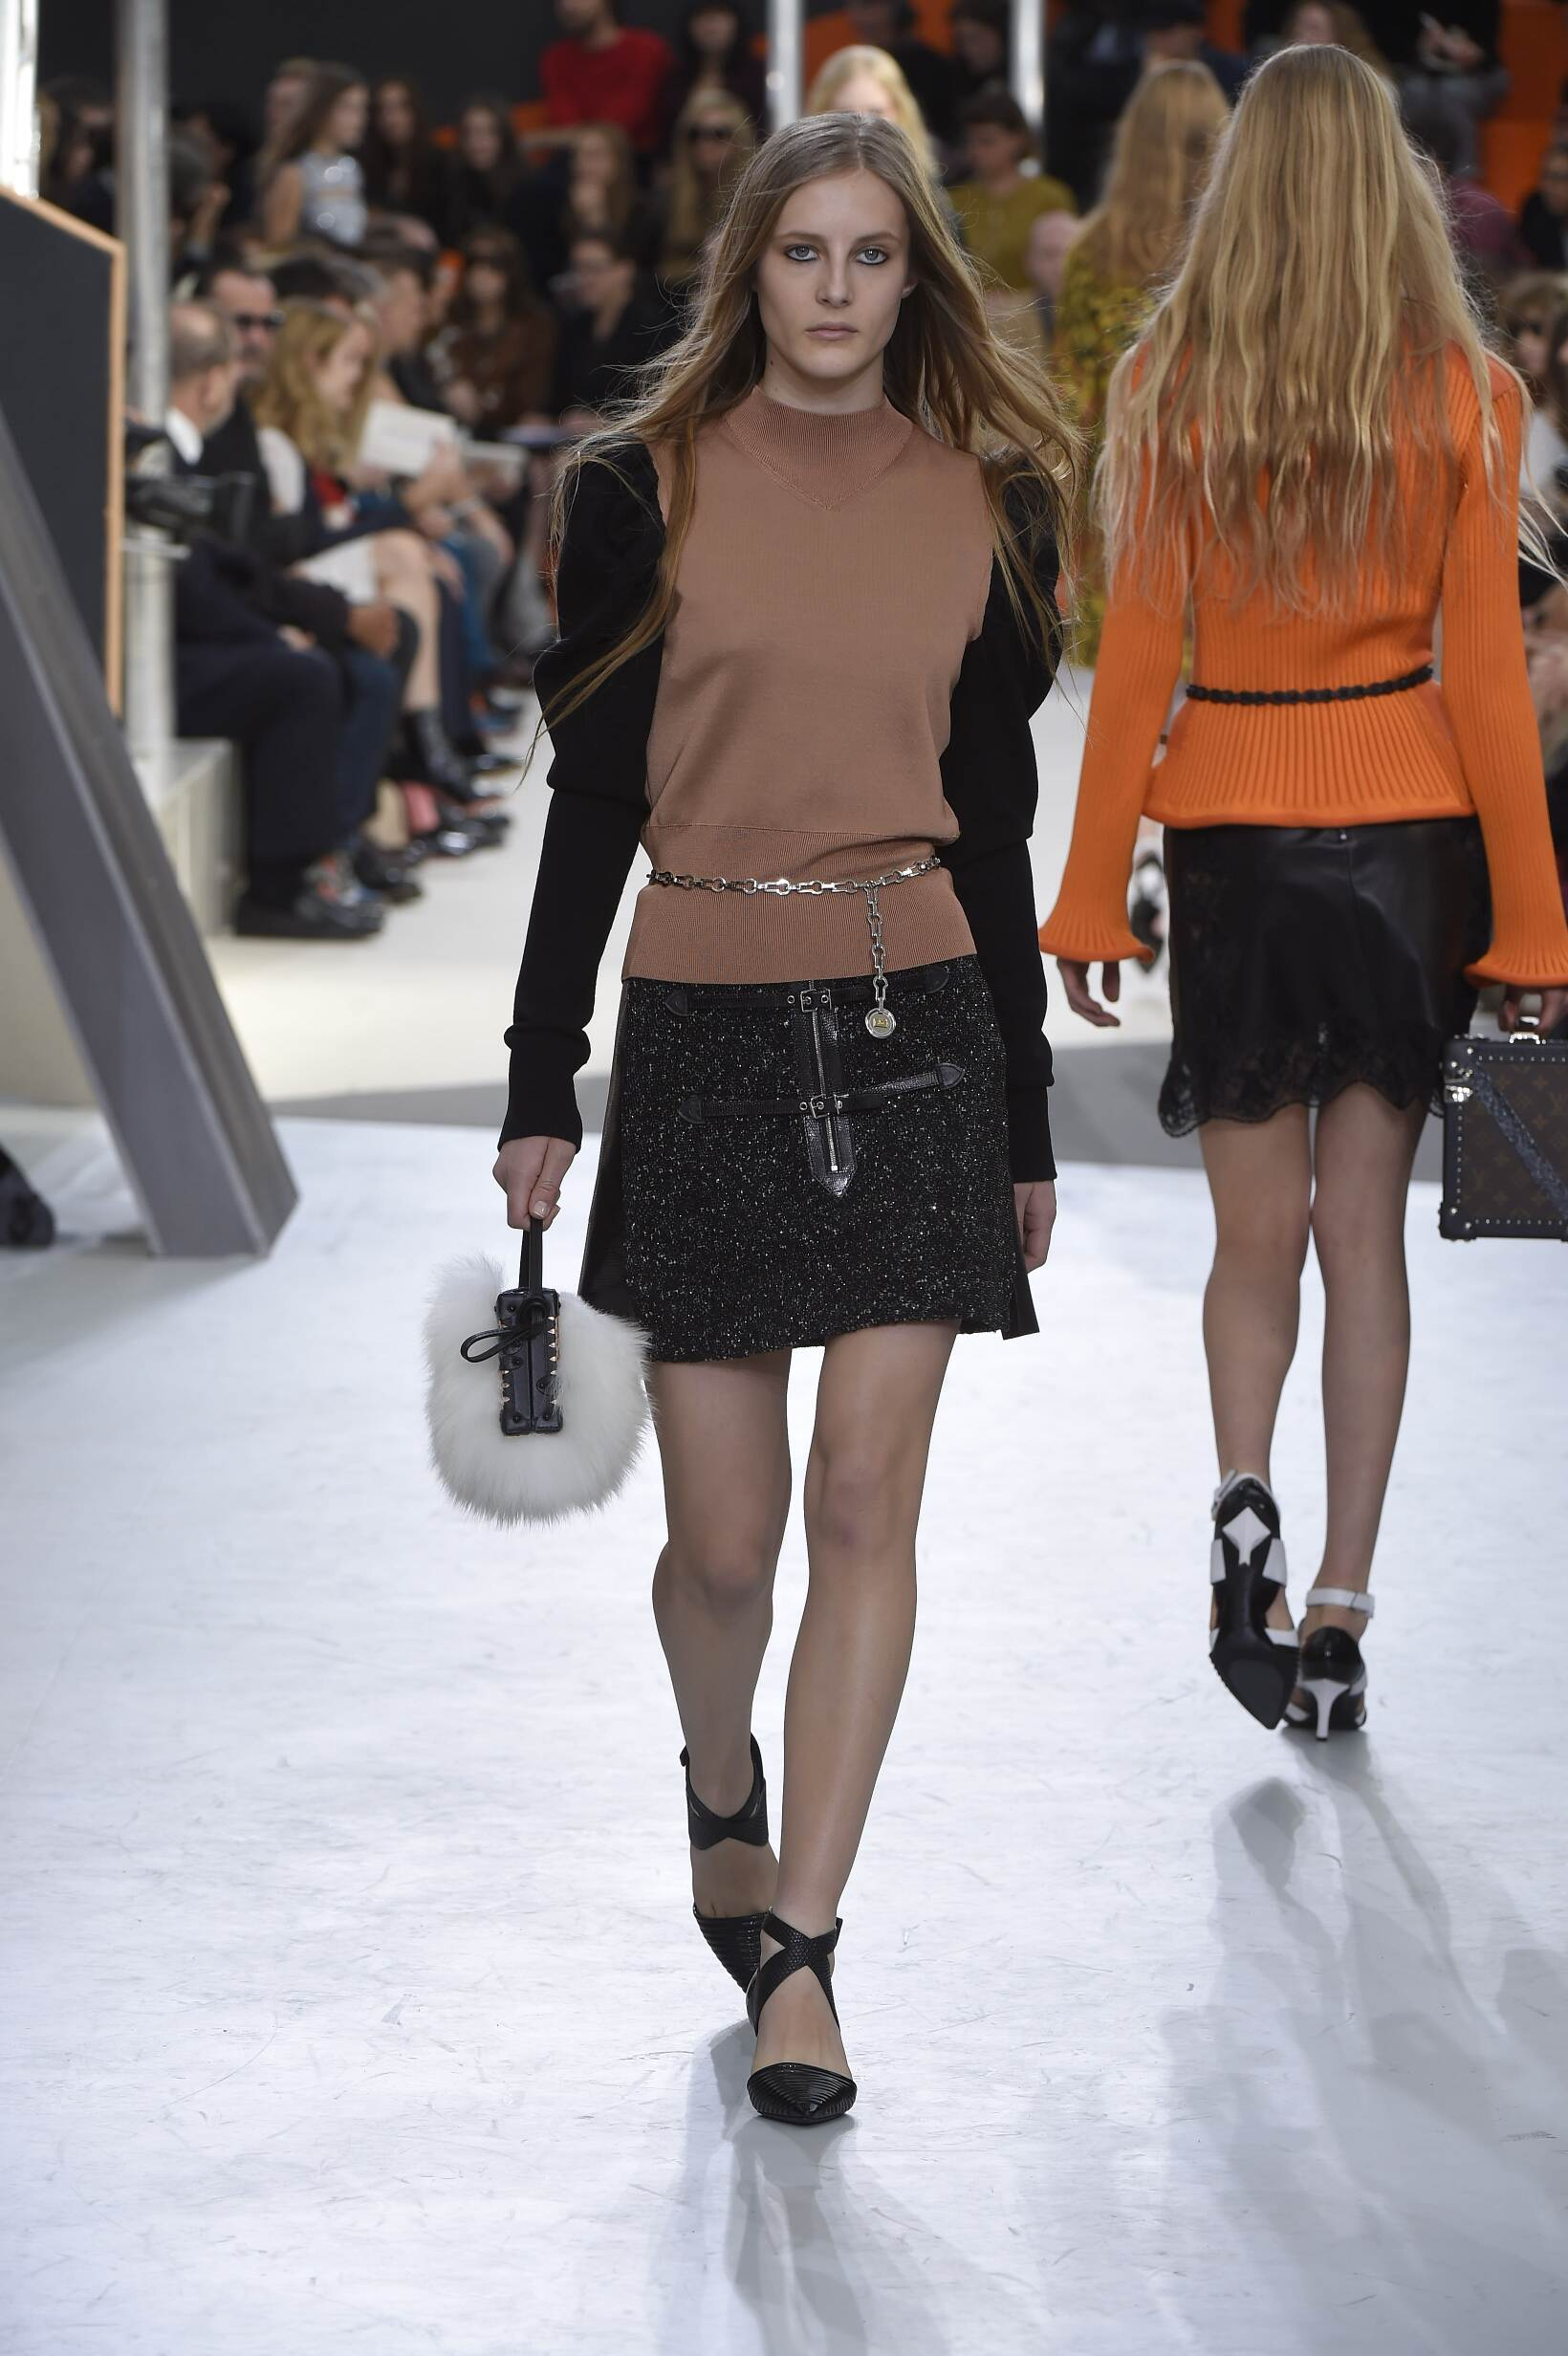 Catwalk Louis Vuitton Collection Fashion Show Winter 2015